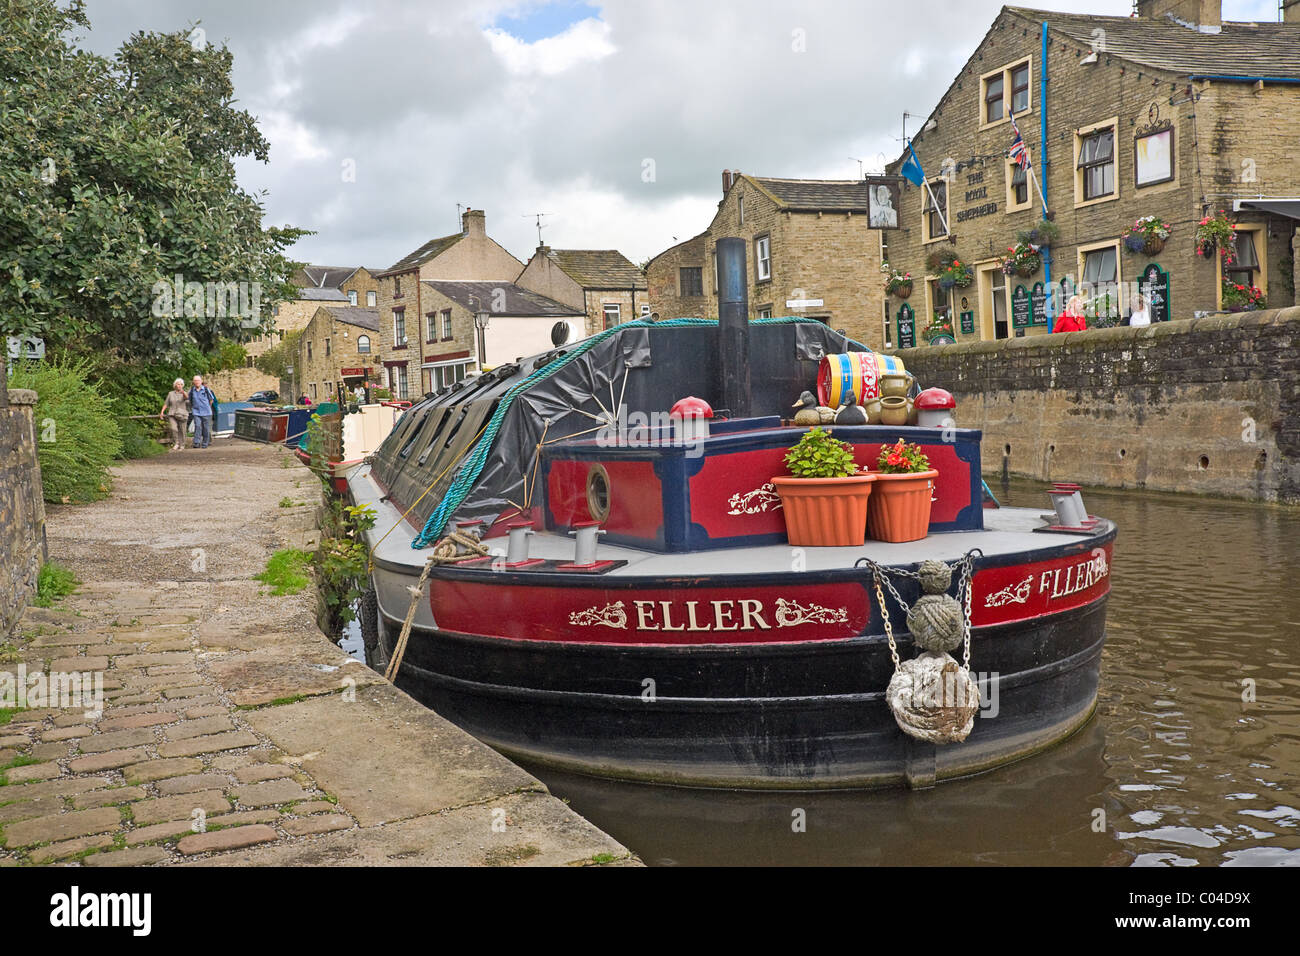 Towpath and narrow boat on the canal at Skipton, North Yorkshire Stock Photo